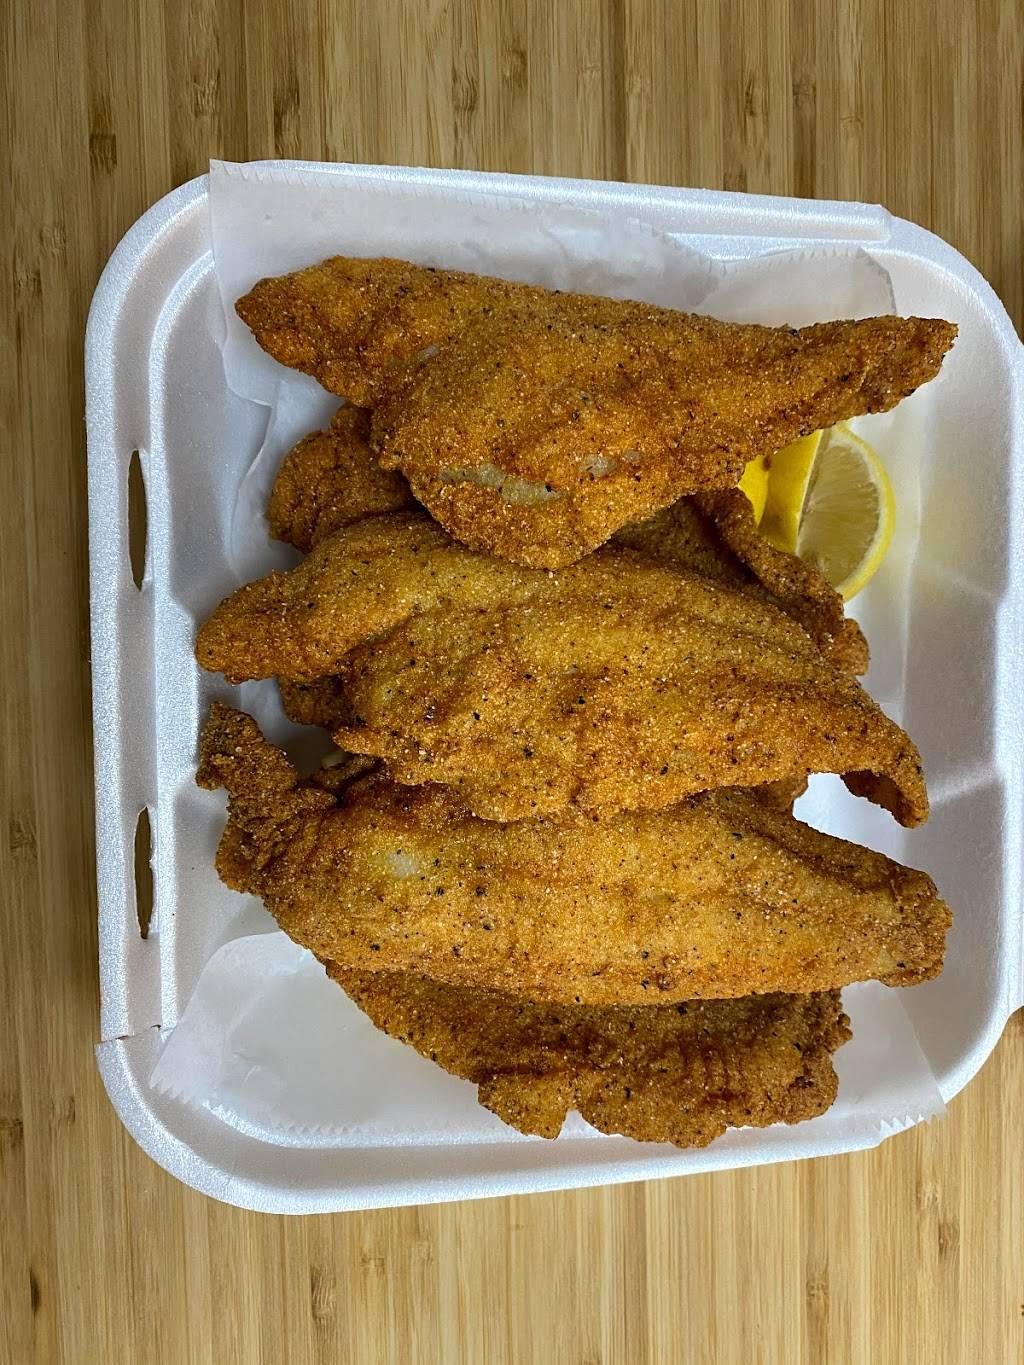 Wing Master | restaurant | 3014 Allison-Bonnett Memorial Dr #116, Hueytown, AL 35023, USA | 2055185119 OR +1 205-518-5119